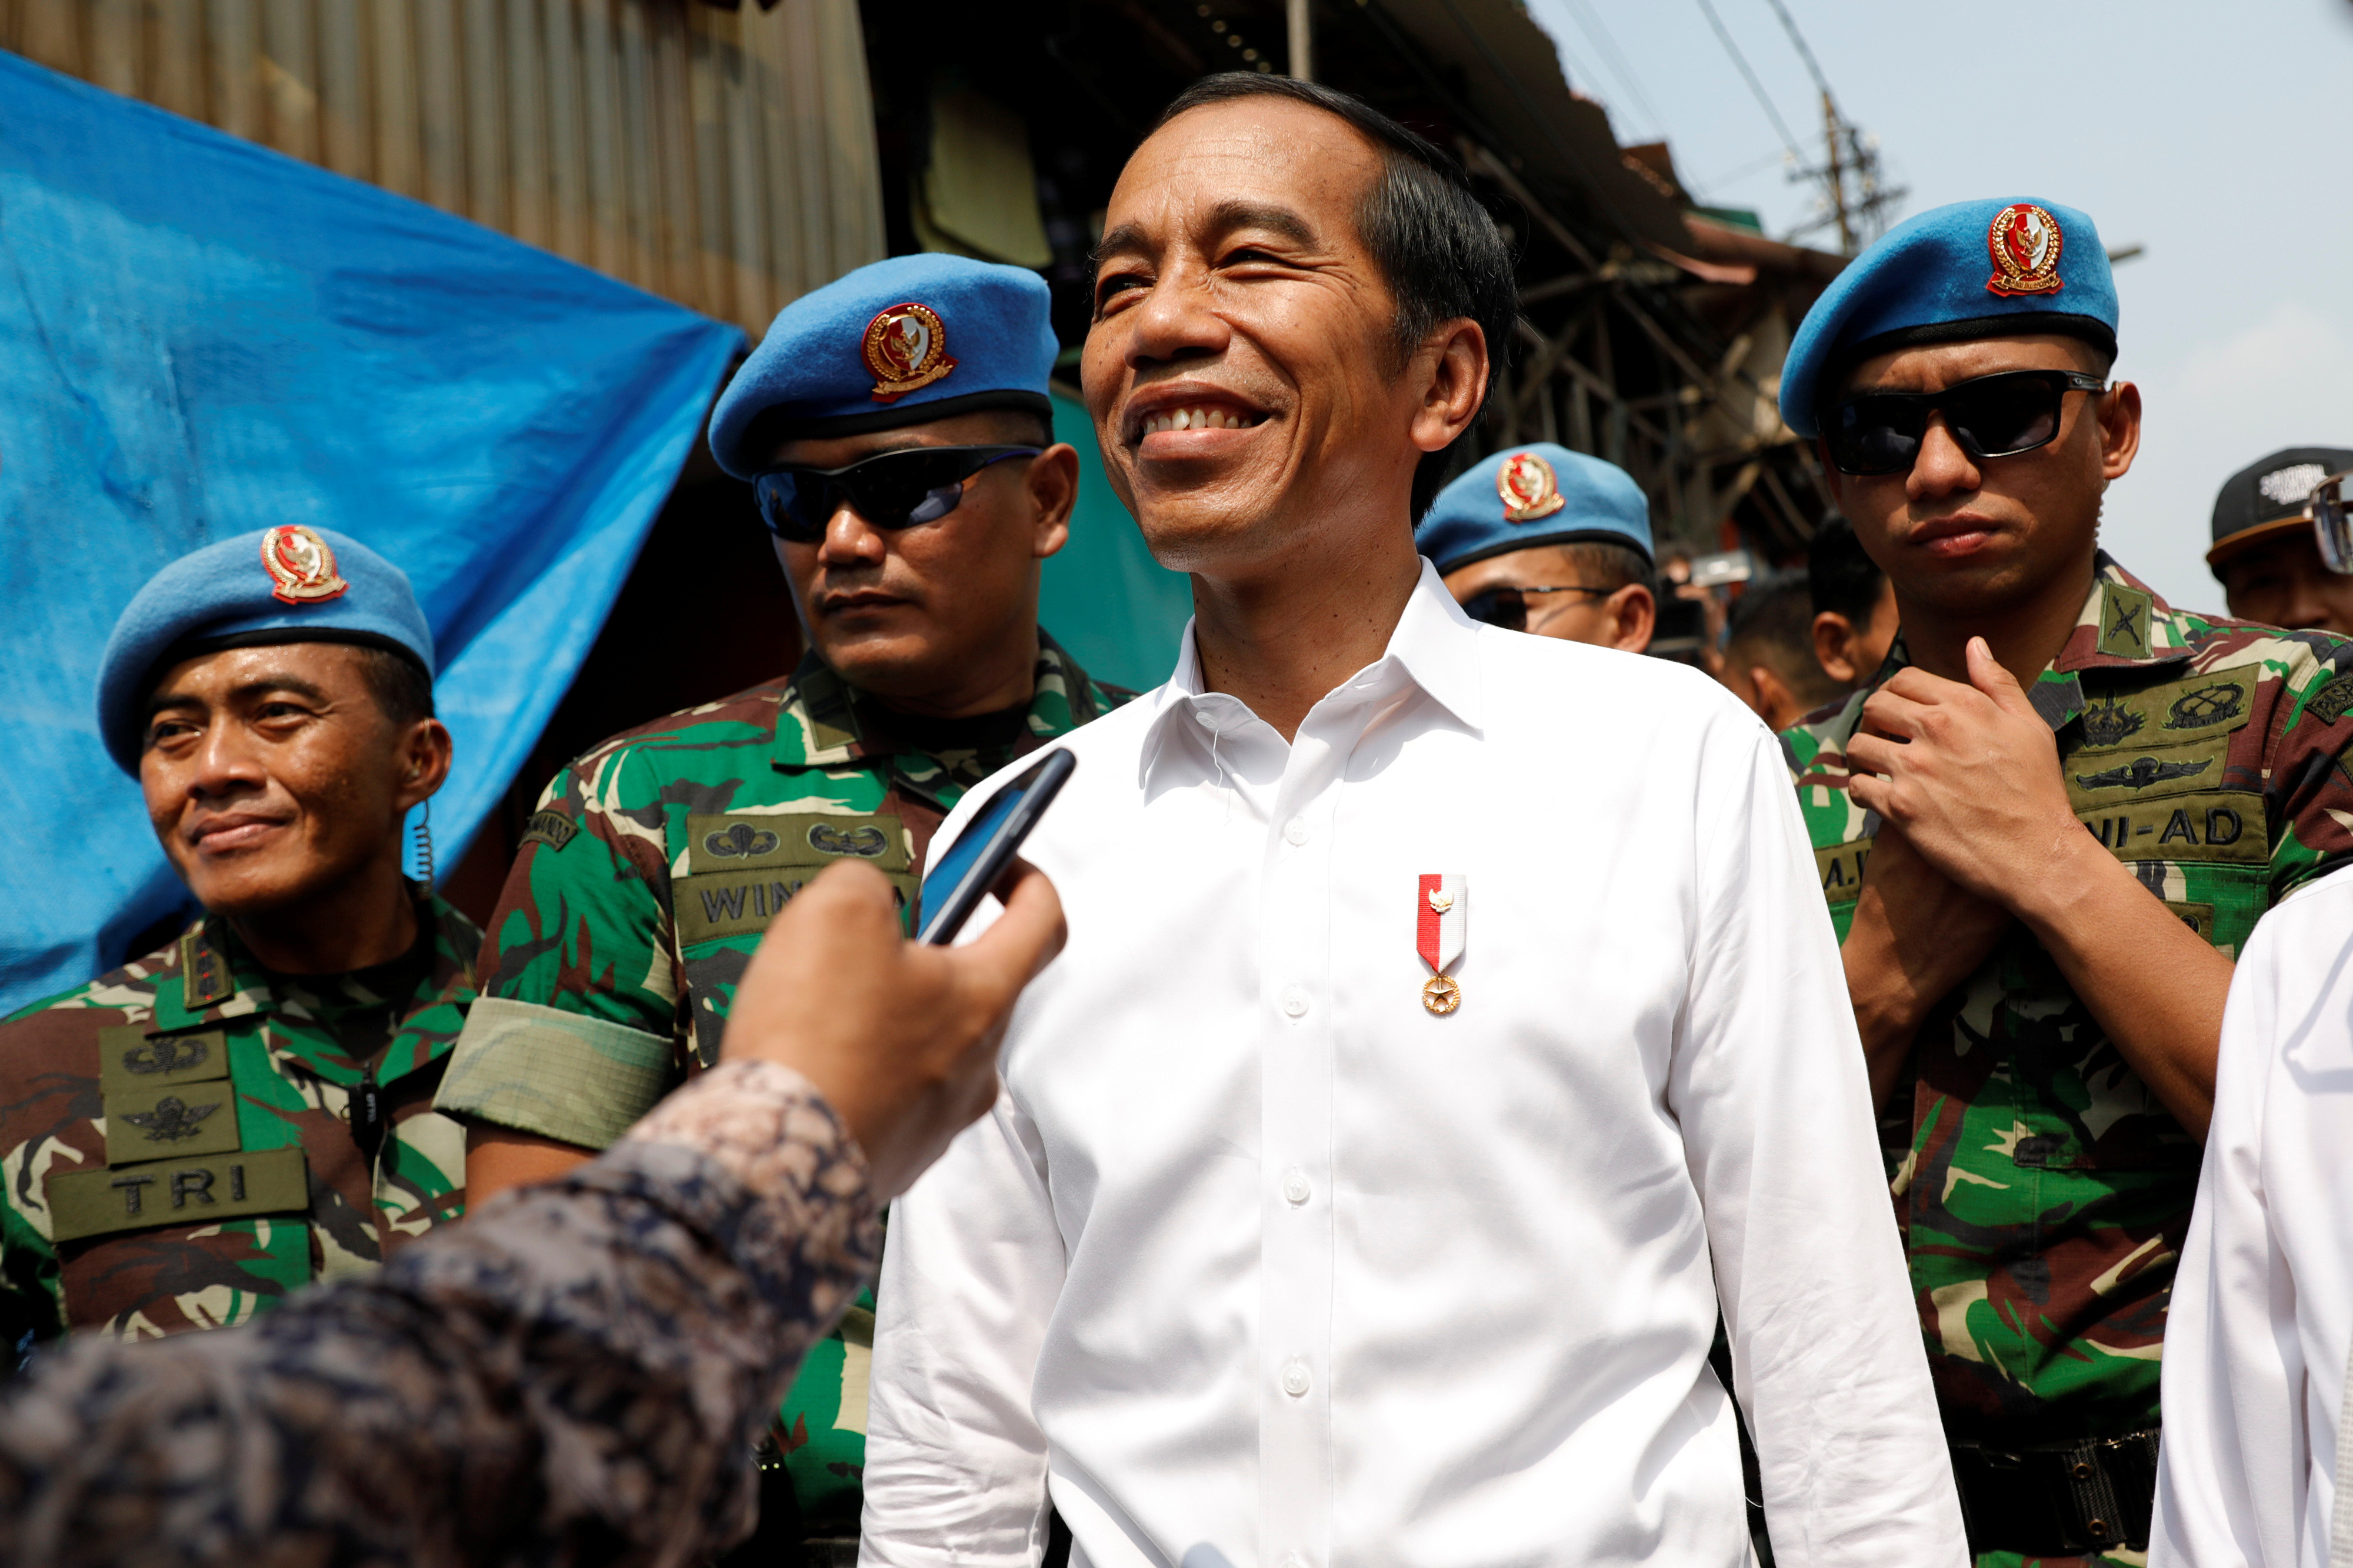 2019-05-21T065908Z_712755273_RC169F095660_RTRMADP_3_INDONESIA-ELECTION